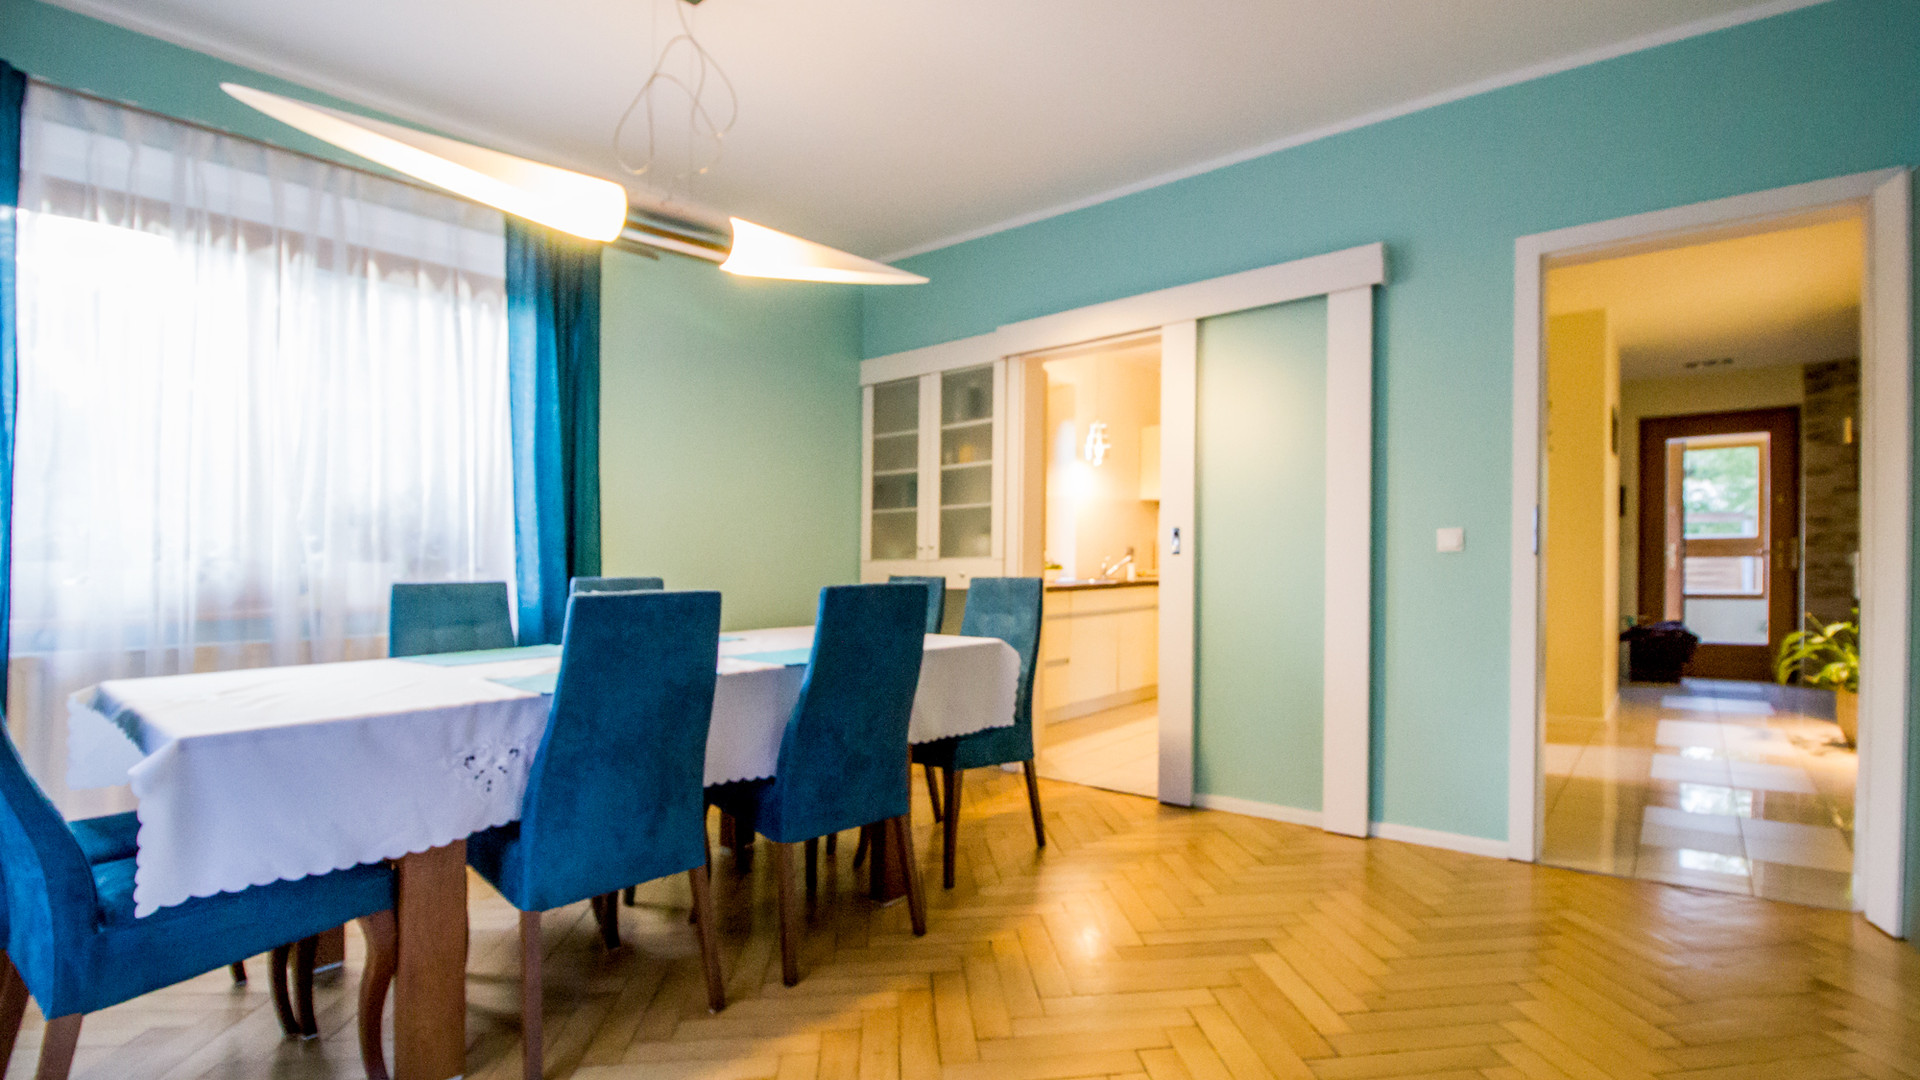 Wola Poznan house for rent.jpg